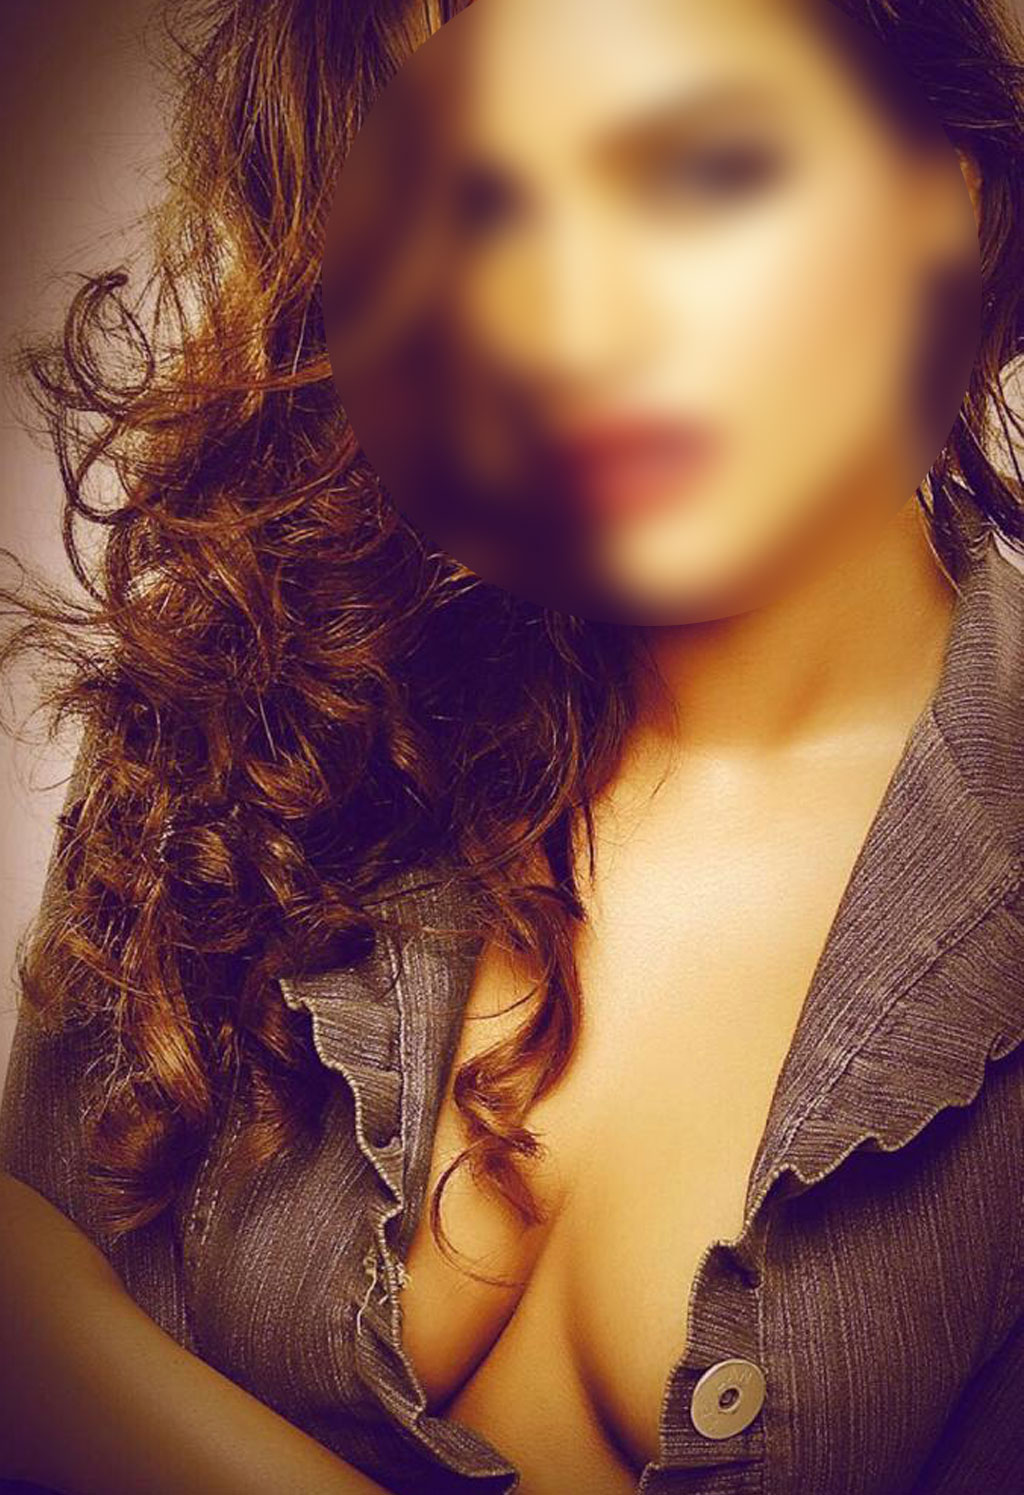 Ahmedabad Escorts | 09000000000 good looking staff under one place | Call Girls in Ahmedabad & Wh…